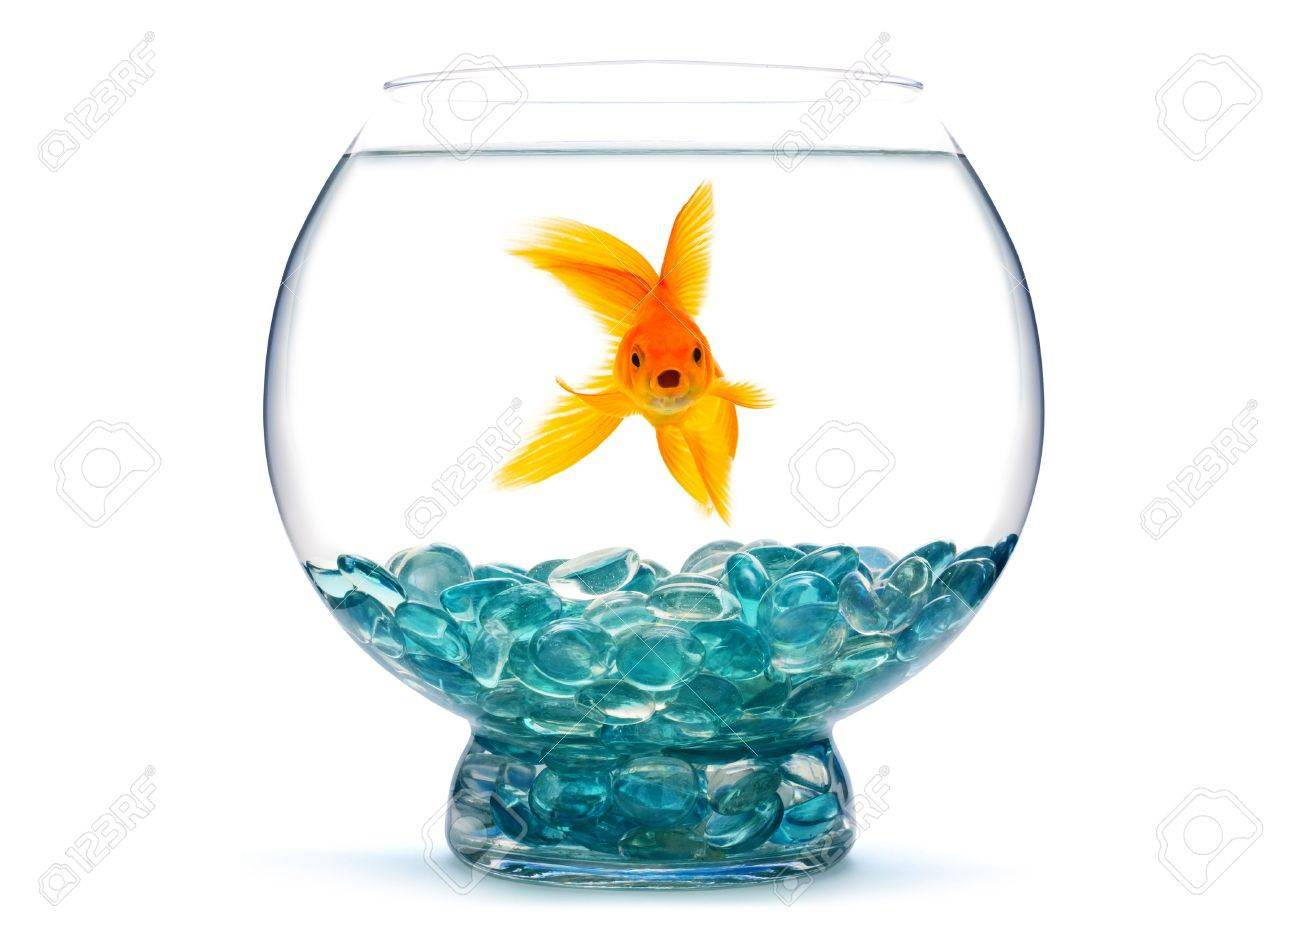 Goldfish in aquarium on white background Stock Photo - 5709473